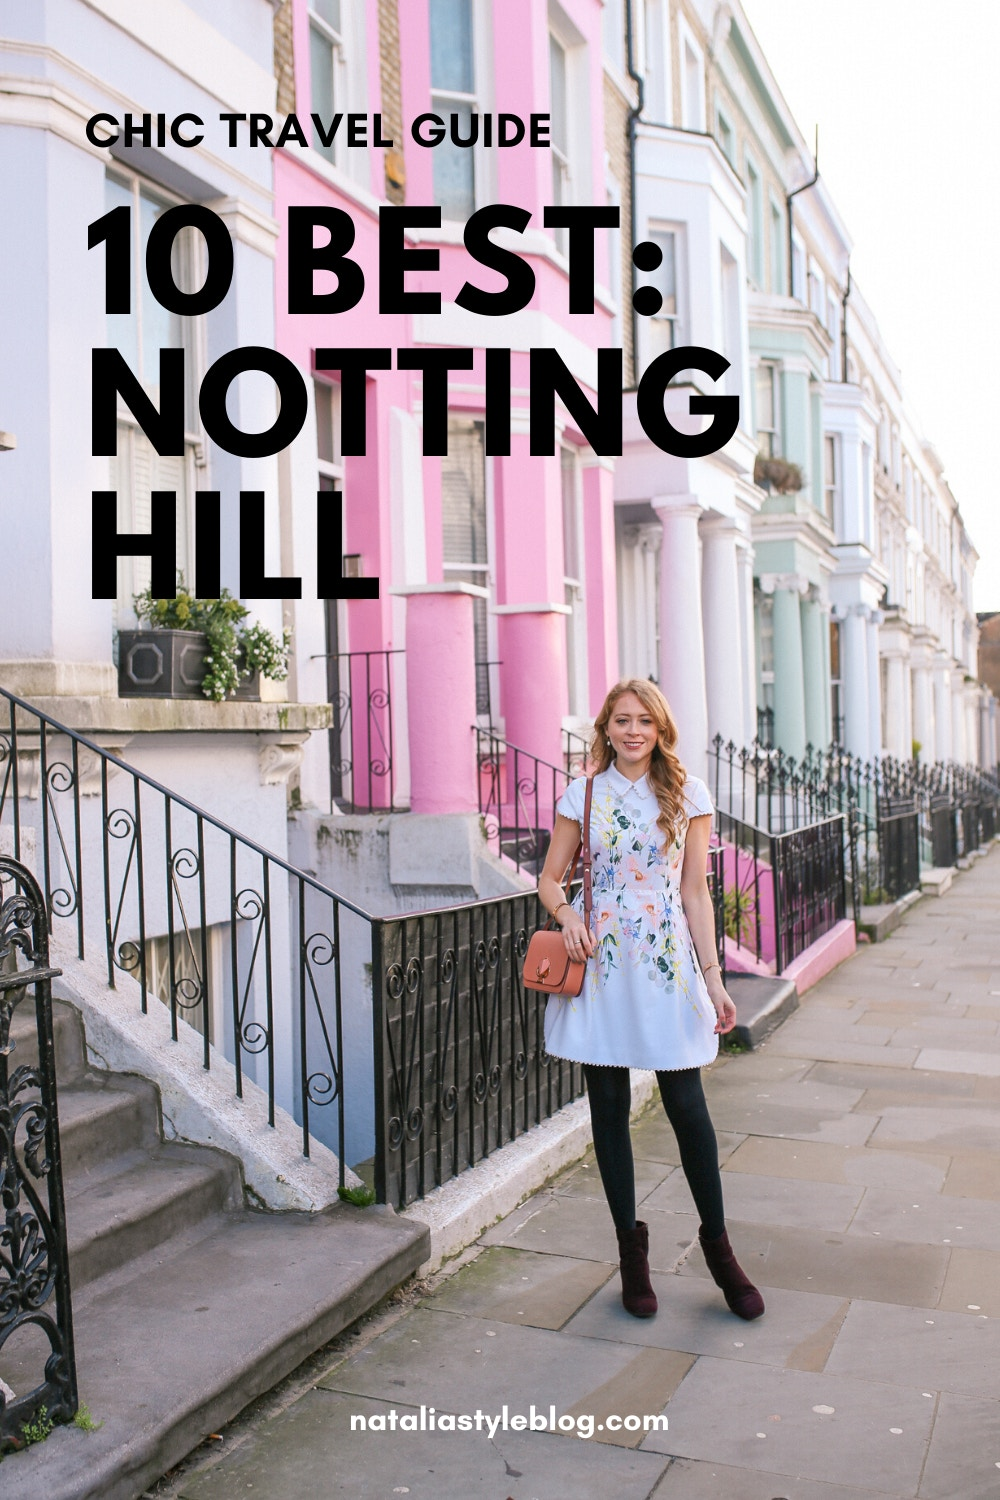 Top 10 Things to do in Notting Hill: from chic shopping to the best pastel houses!